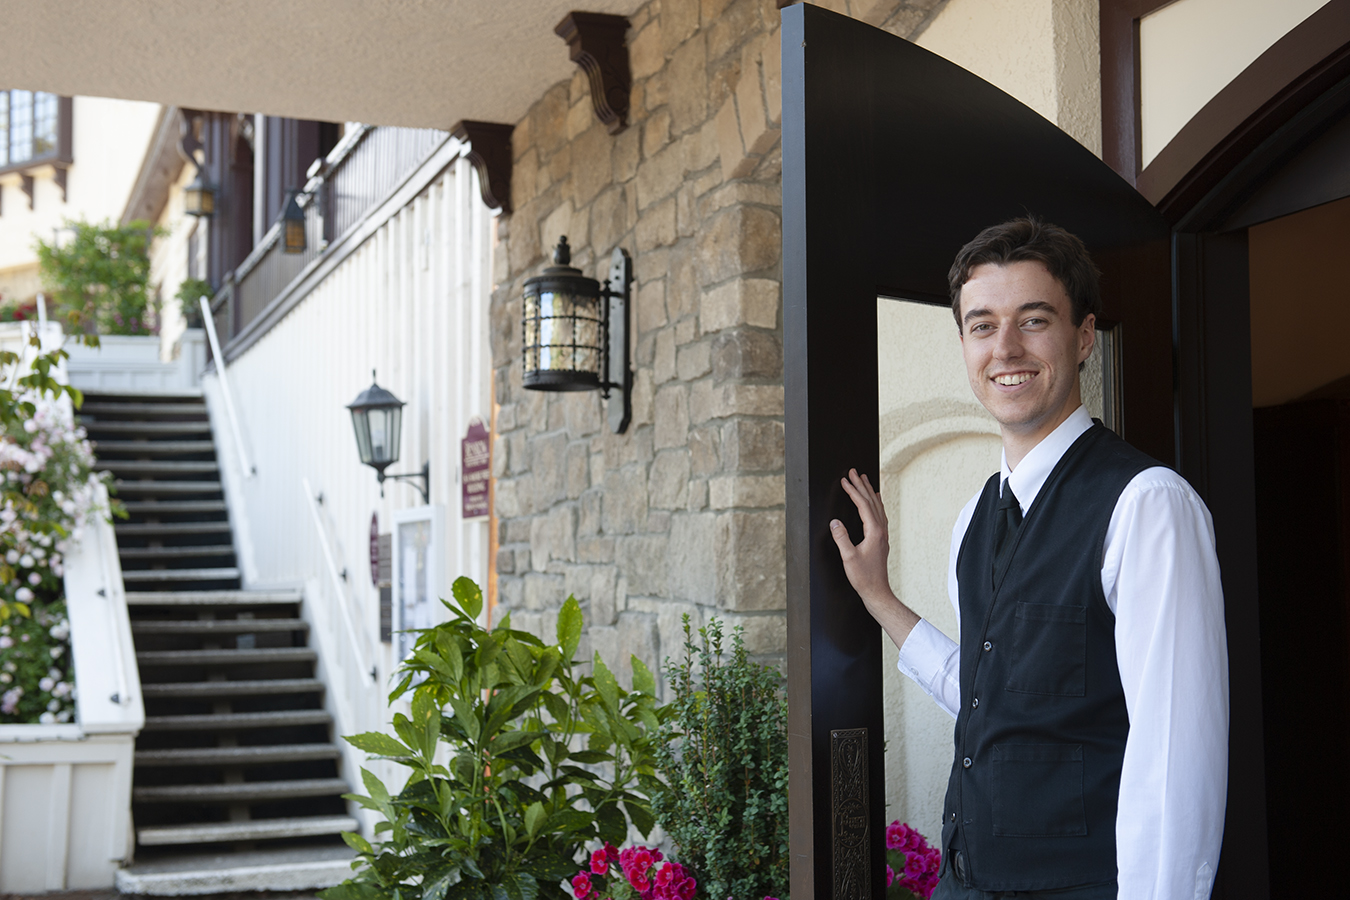 banner image is of Guest attendant opens the lobby door, welcome to Benbow Historic Inn